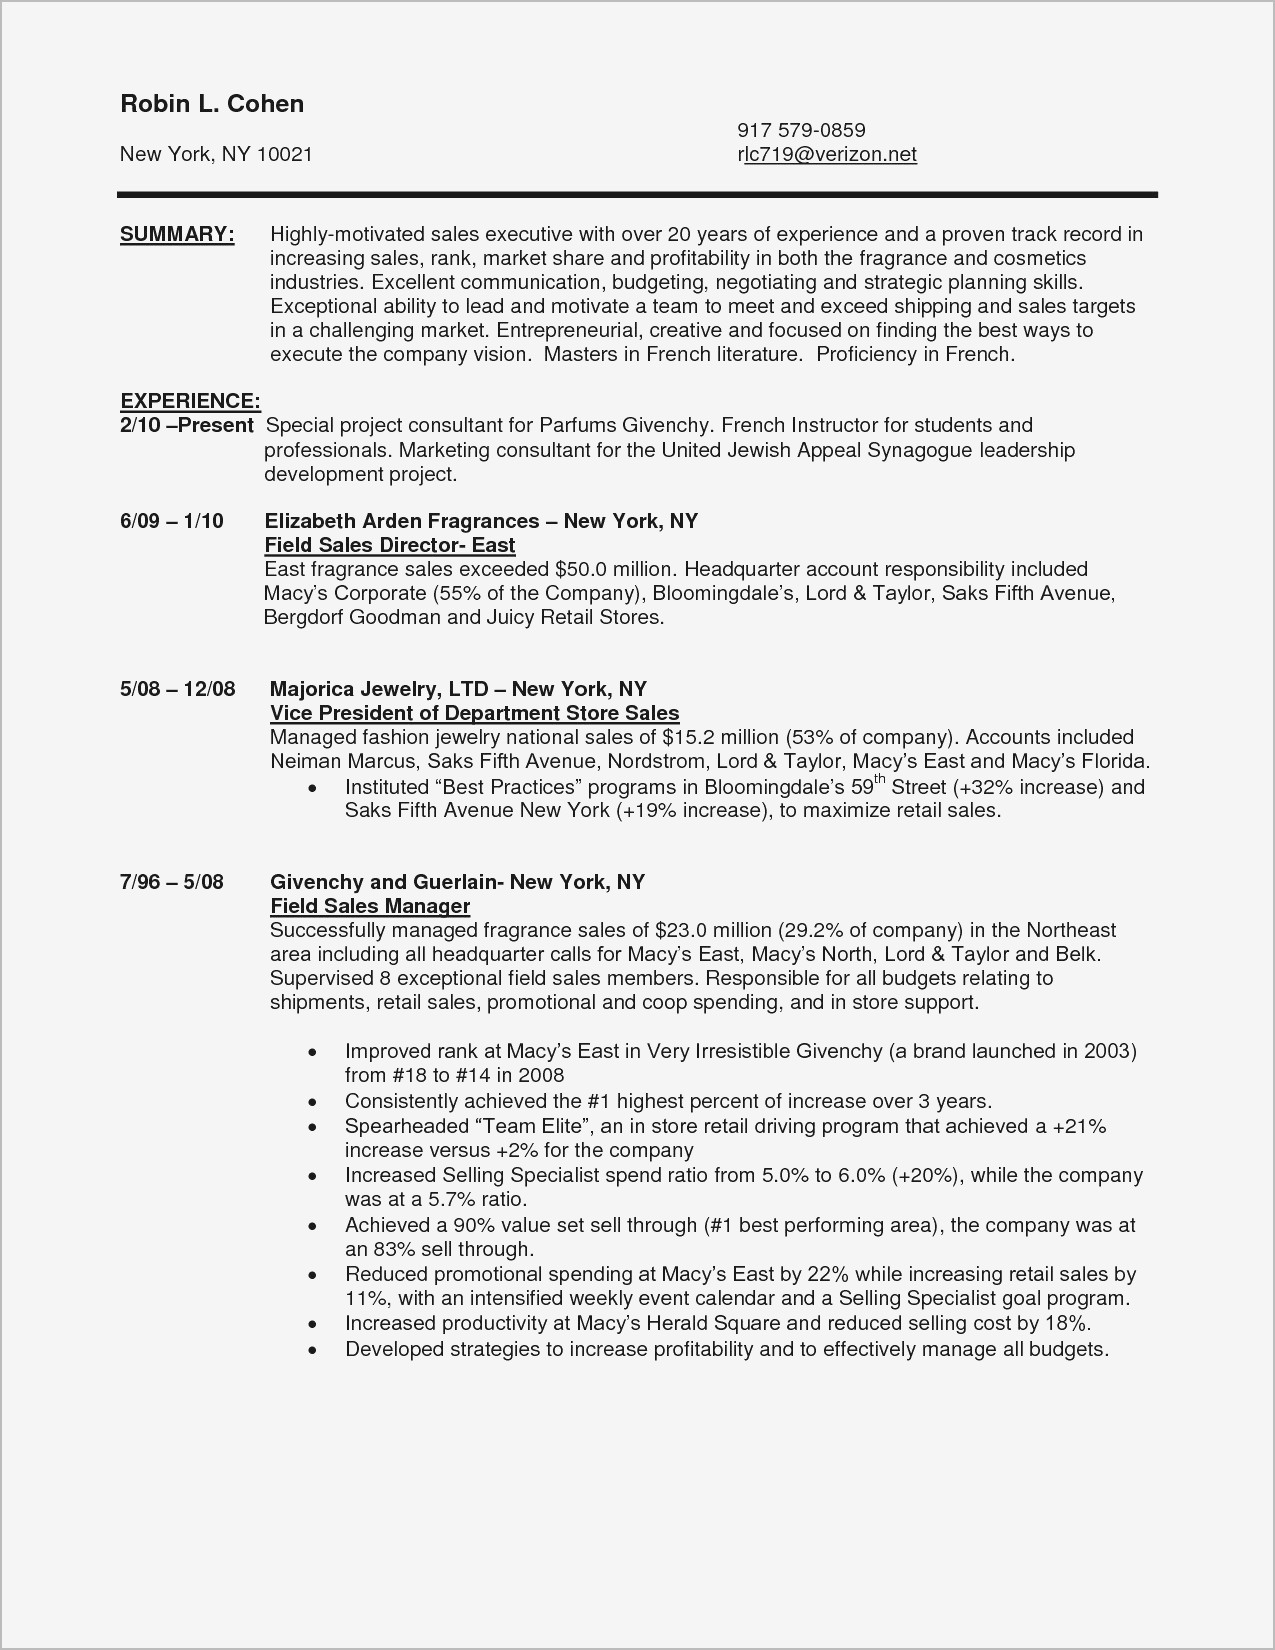 Resume for Internal Promotion - Resume for Internal Promotion Template Sample Pdf Beautiful American